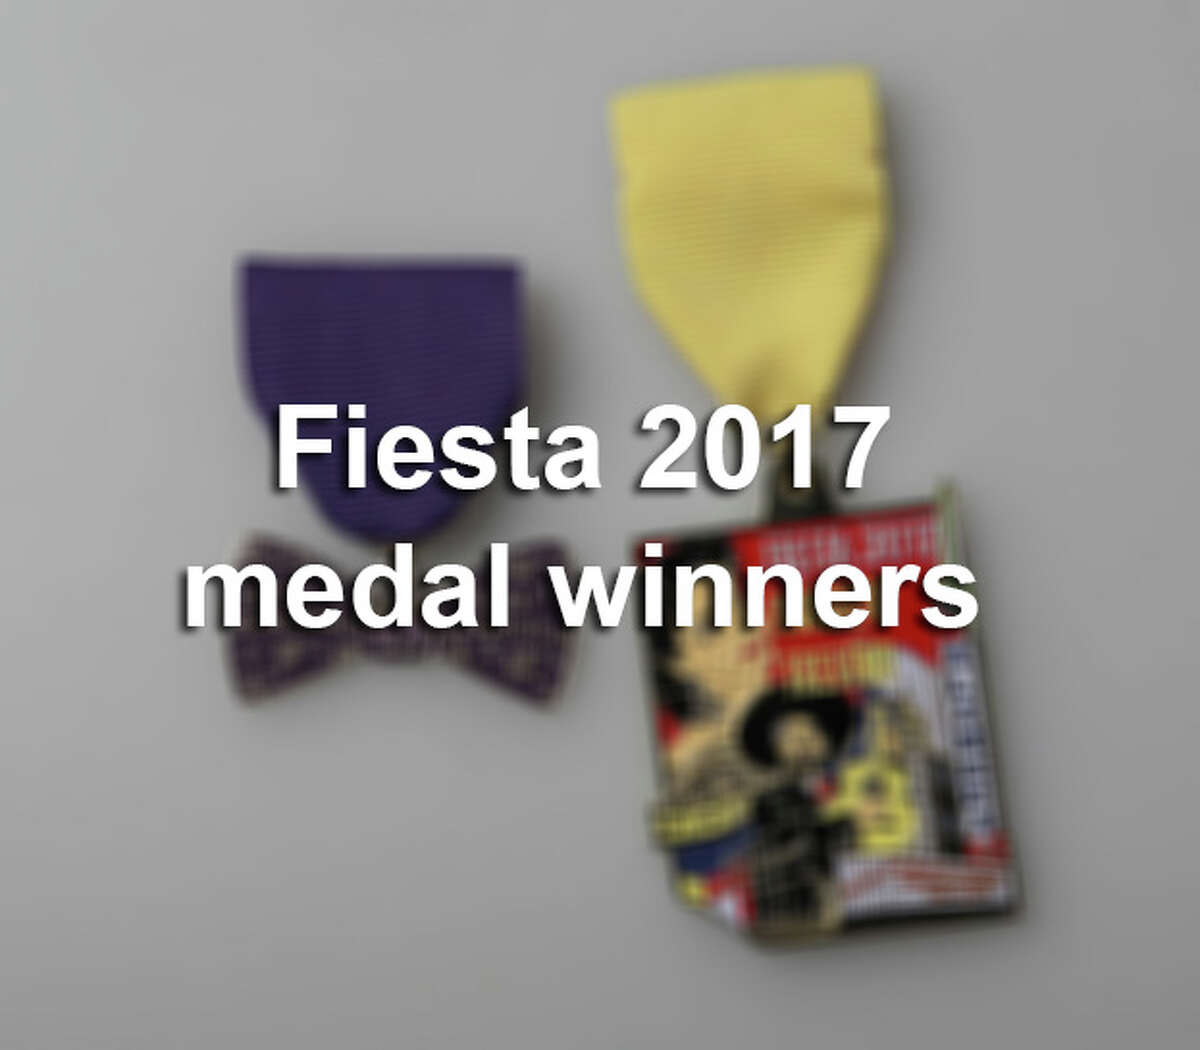 See the colorful and creative Fiesta medals that caught our attention in 2017.